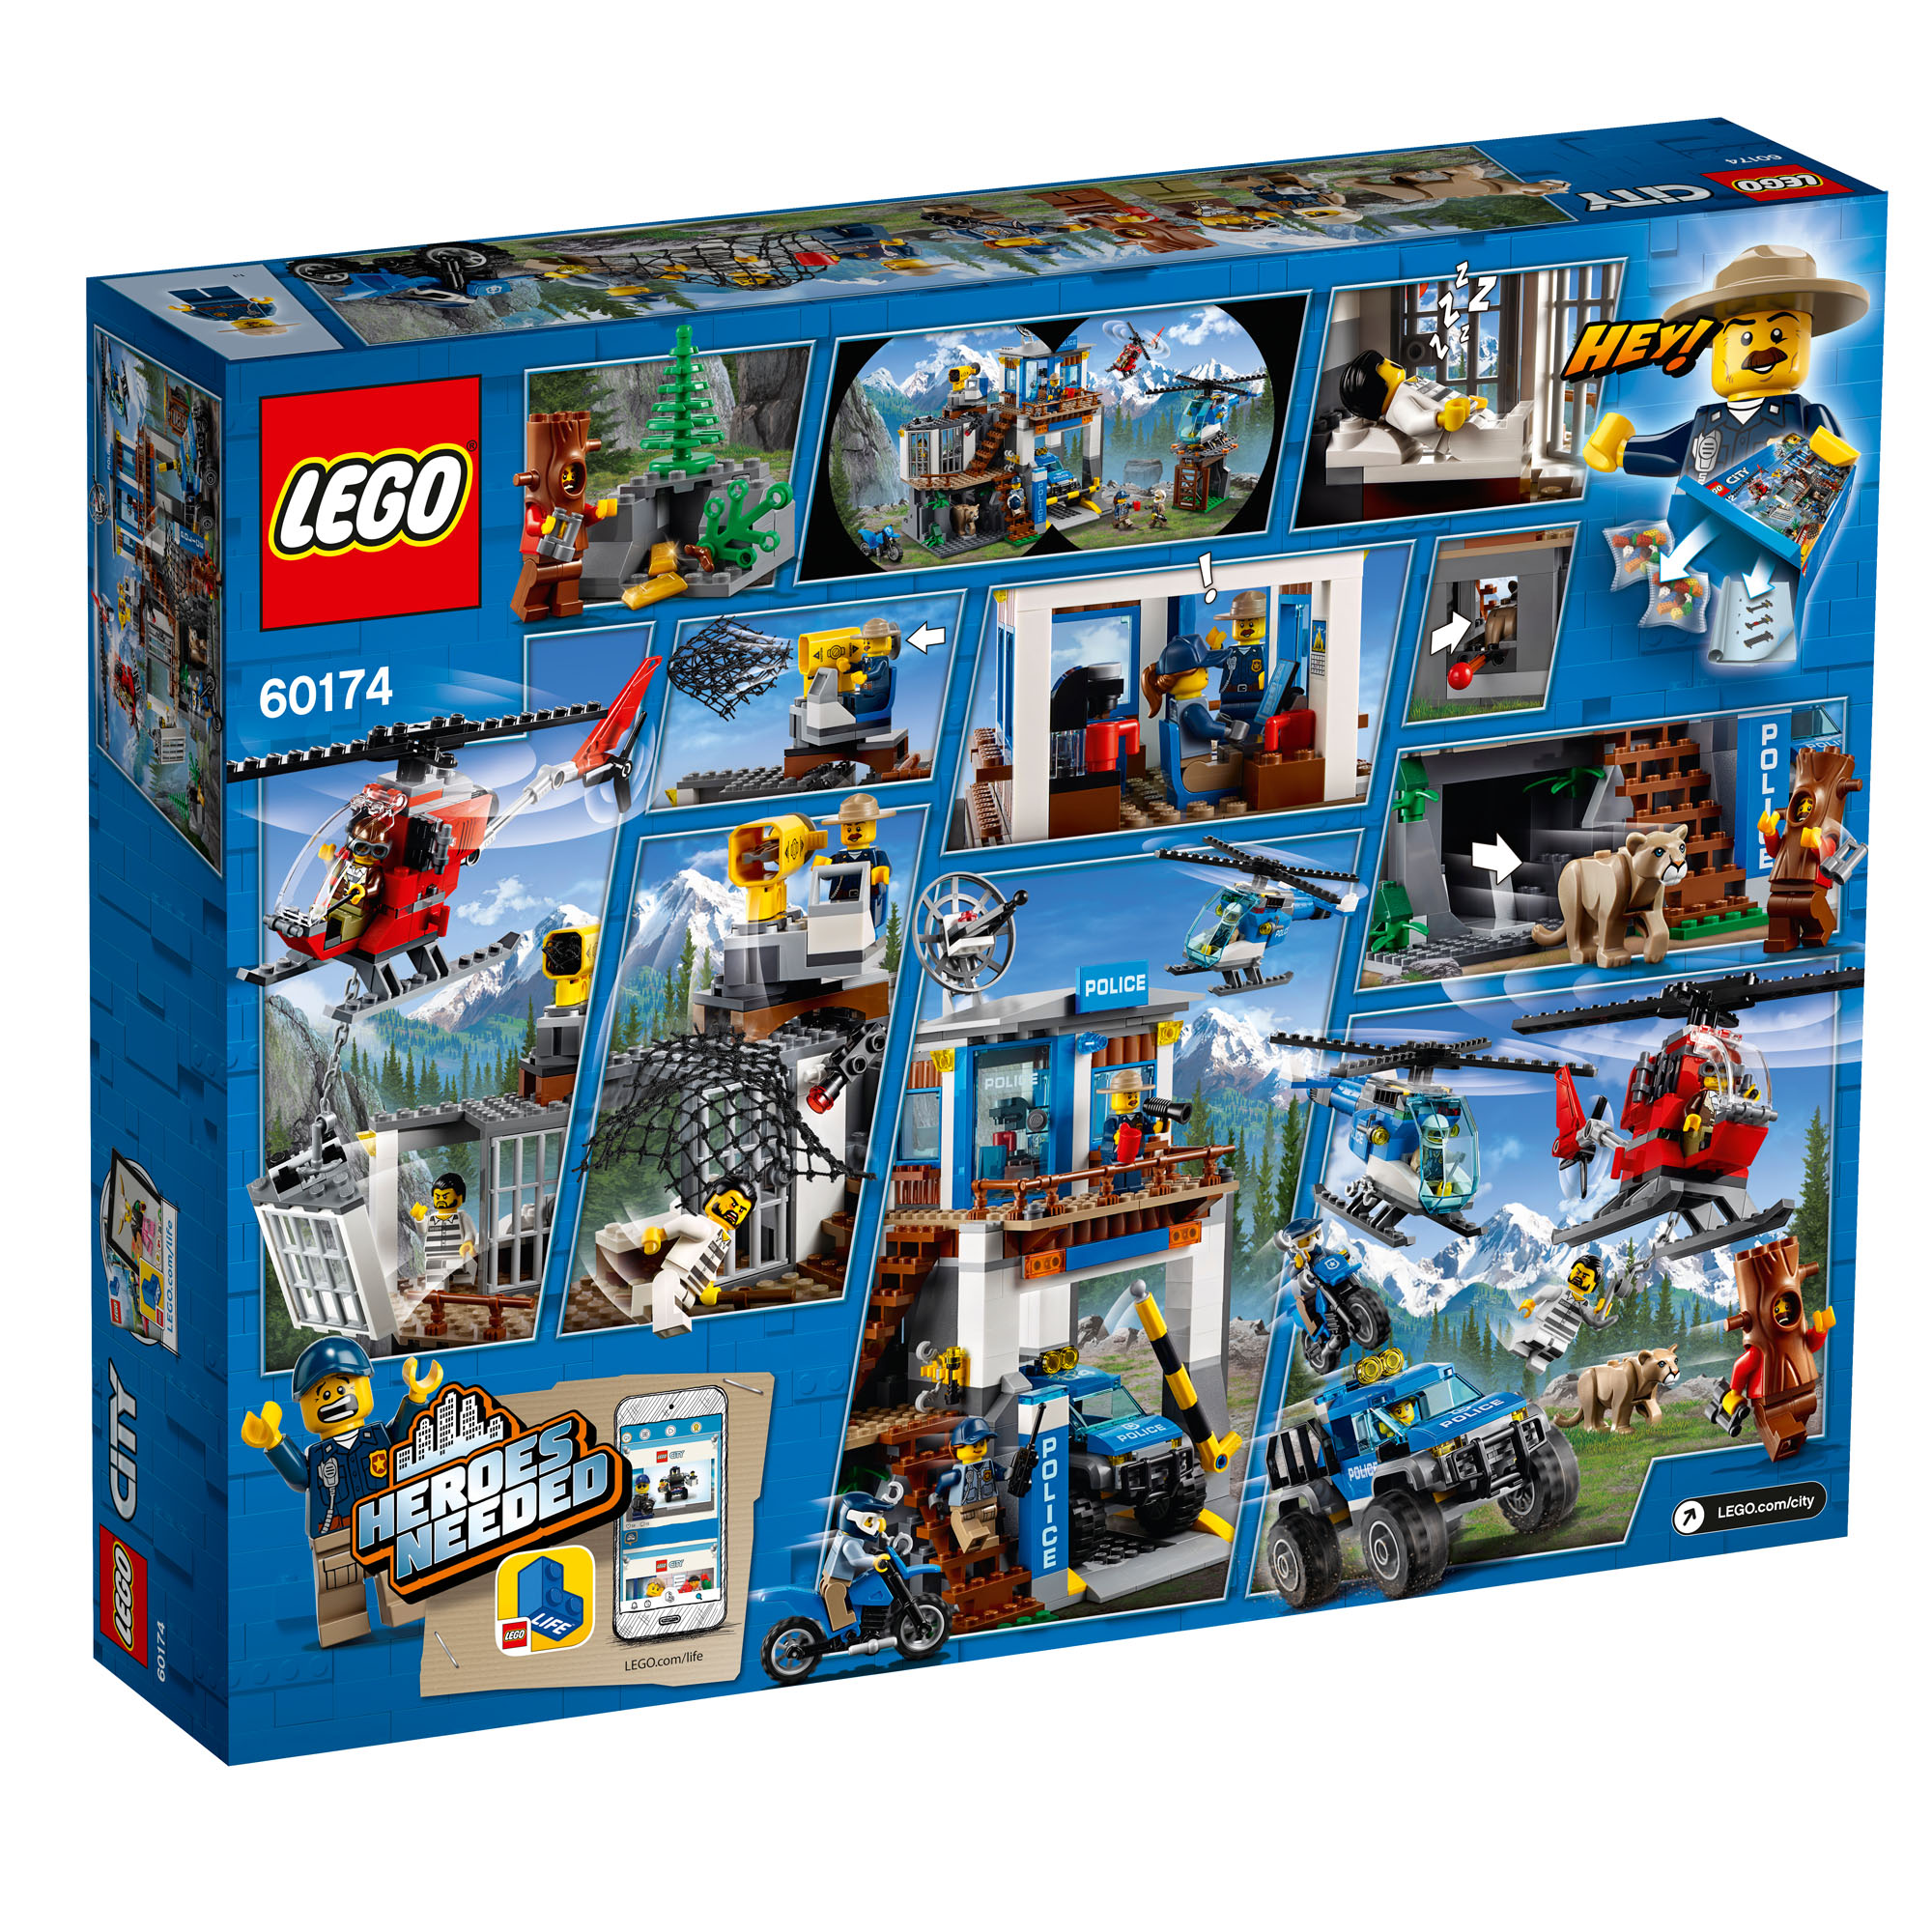 60174 lego city police mountain police headquarters 663 pieces age 6 new 2018 ebay. Black Bedroom Furniture Sets. Home Design Ideas